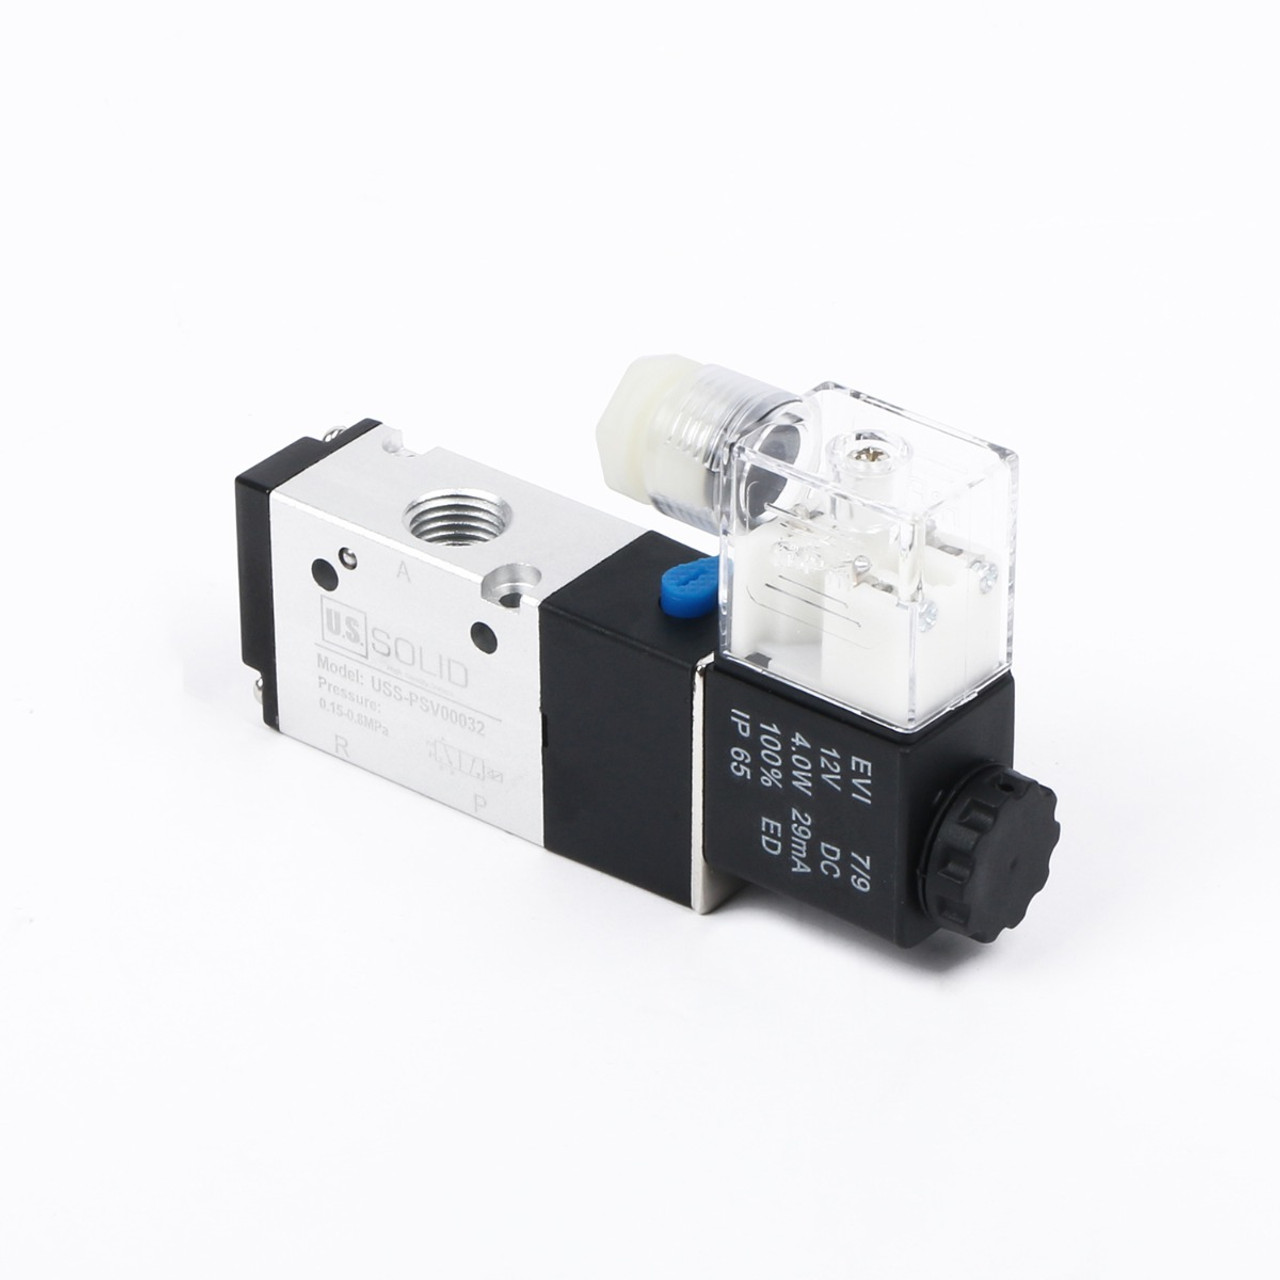 hight resolution of ussolid 1 4 3 way 2 position pneumatic electric solenoid valve dc